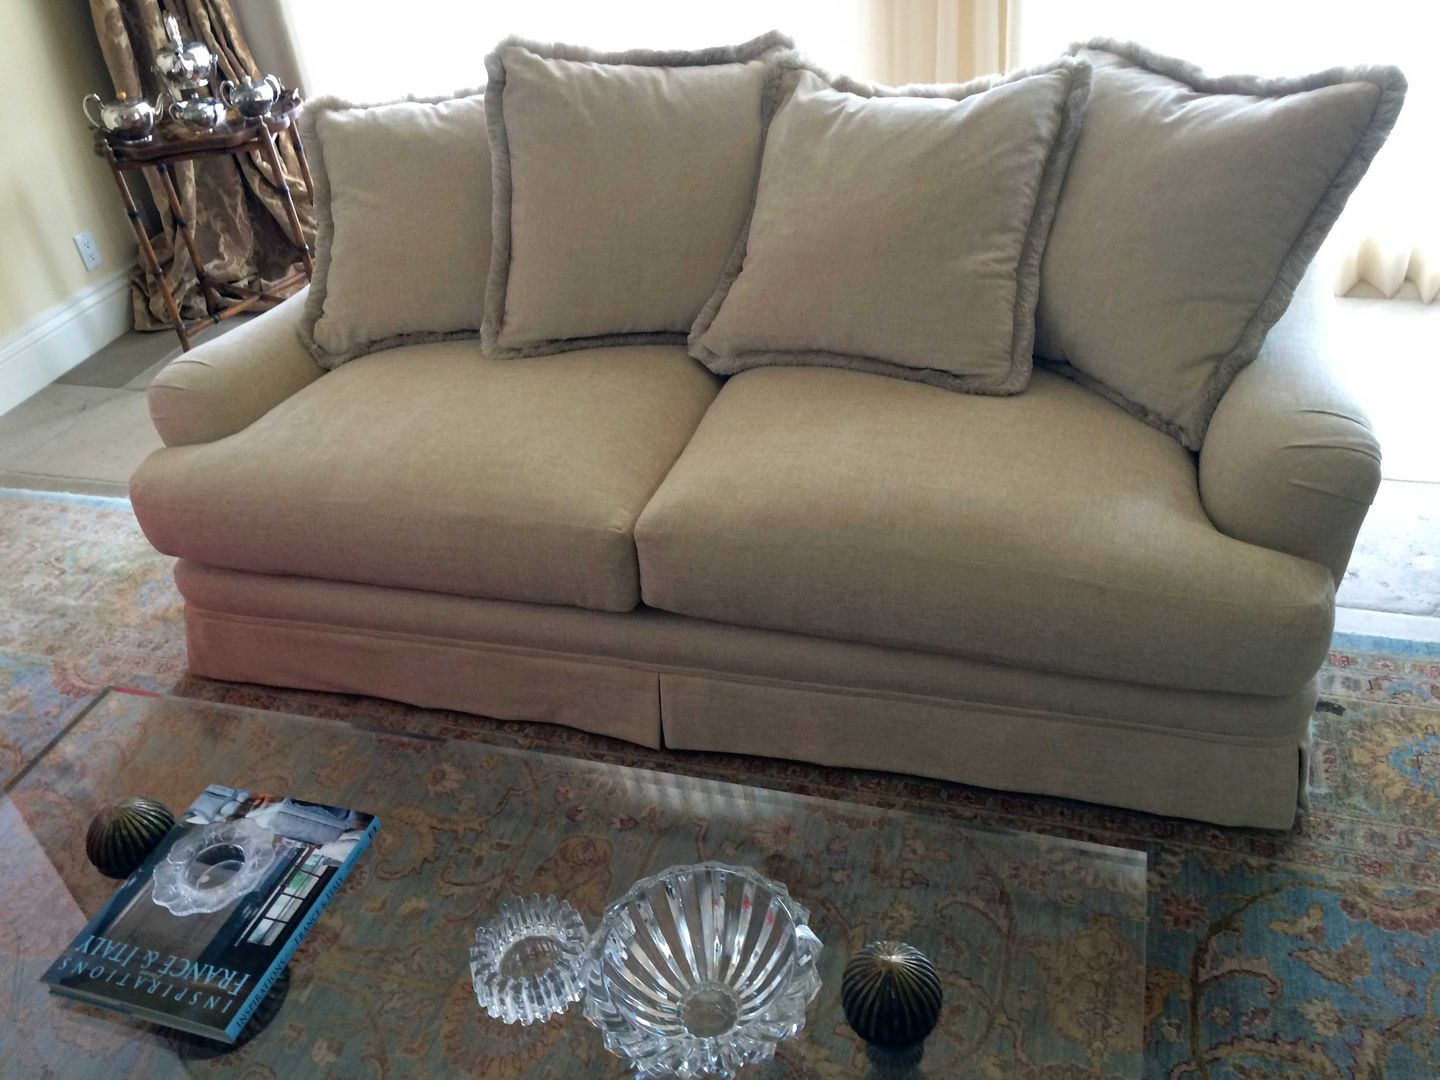 Exceptional Nice Sofa Reupholstery , Awesome Sofa Reupholstery 58 On Sofas And Couches  Set With Sofa Reupholstery